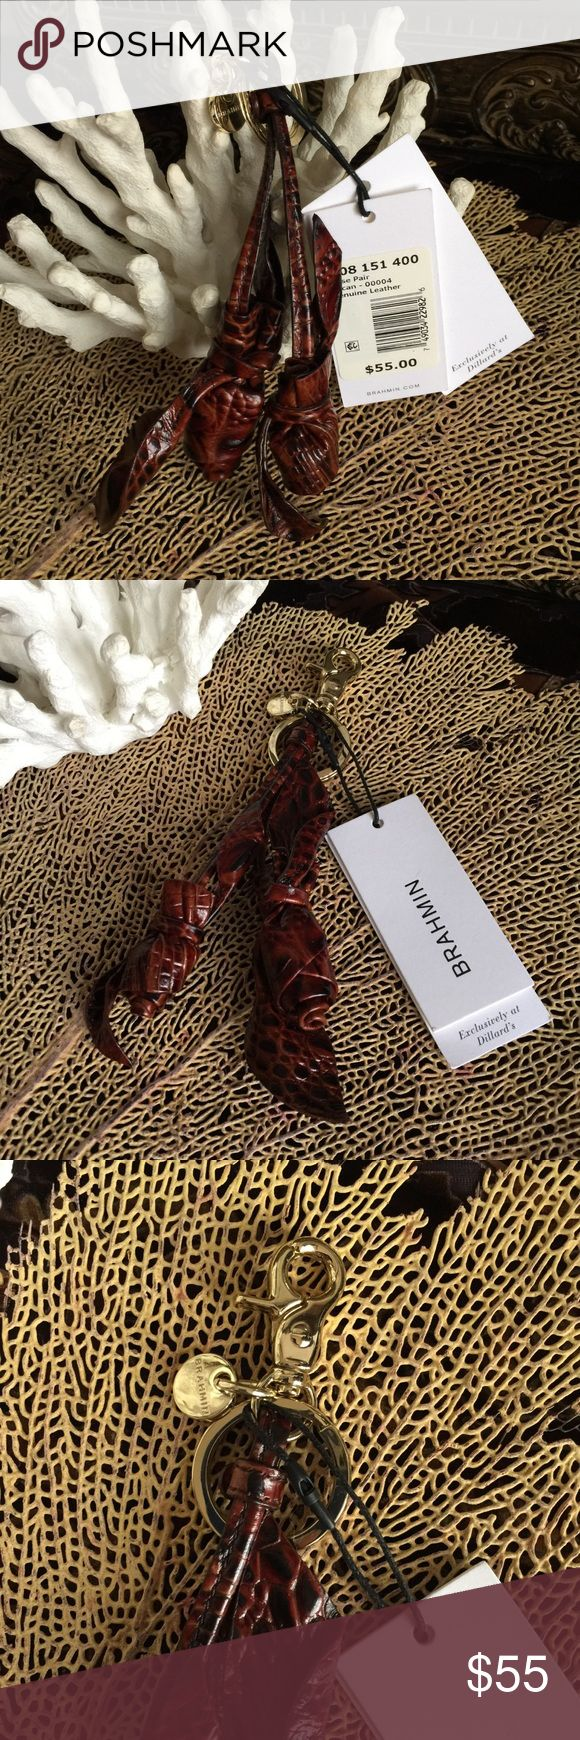 🌴🌴BRAHMIN PECAN LEATHER ROSE PAIR CLIP ACCESSORY Great Brahmin accessory for your purse or keys! NWT Pecan leather rose pair. Easy Clip-on. Approximately 7 inches long. Price is firm. Brahmin Accessories Key & Card Holders